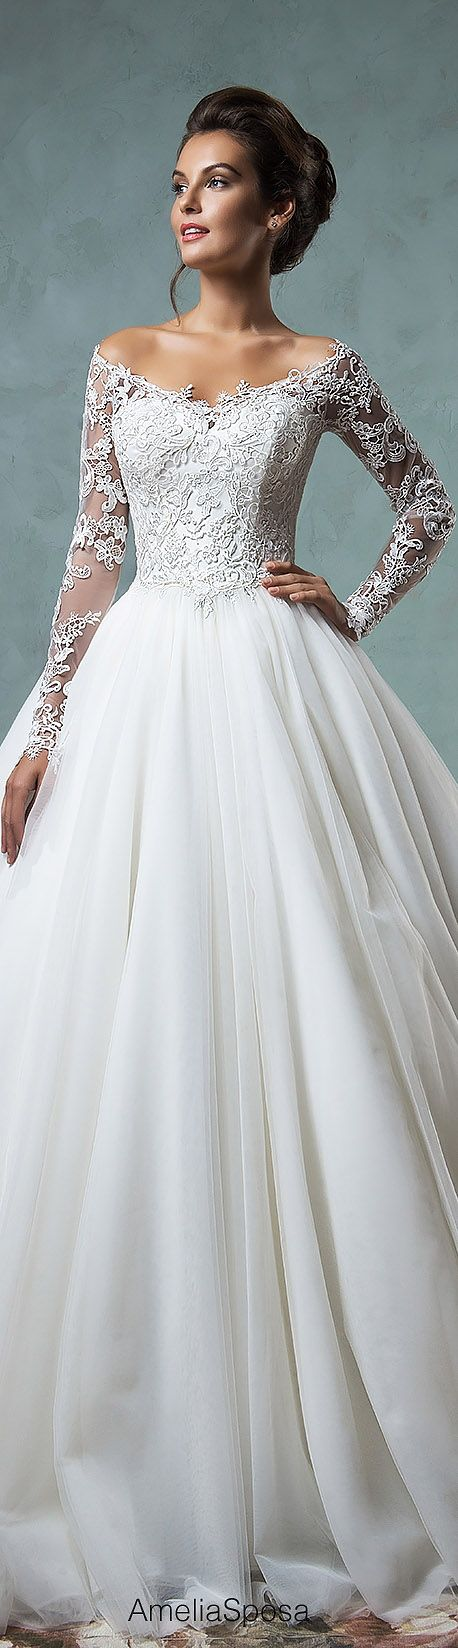 18 Disney Wedding Dresses For Fairy Tale Inspiration. ❤ We propose you to see Disney wedding dresses which reflect the style and beauty Cinderella, Tiana, Belle.  See more: 18 Disney Wedding Dresses For Fairy Tale Inspiration #weddings #dresses